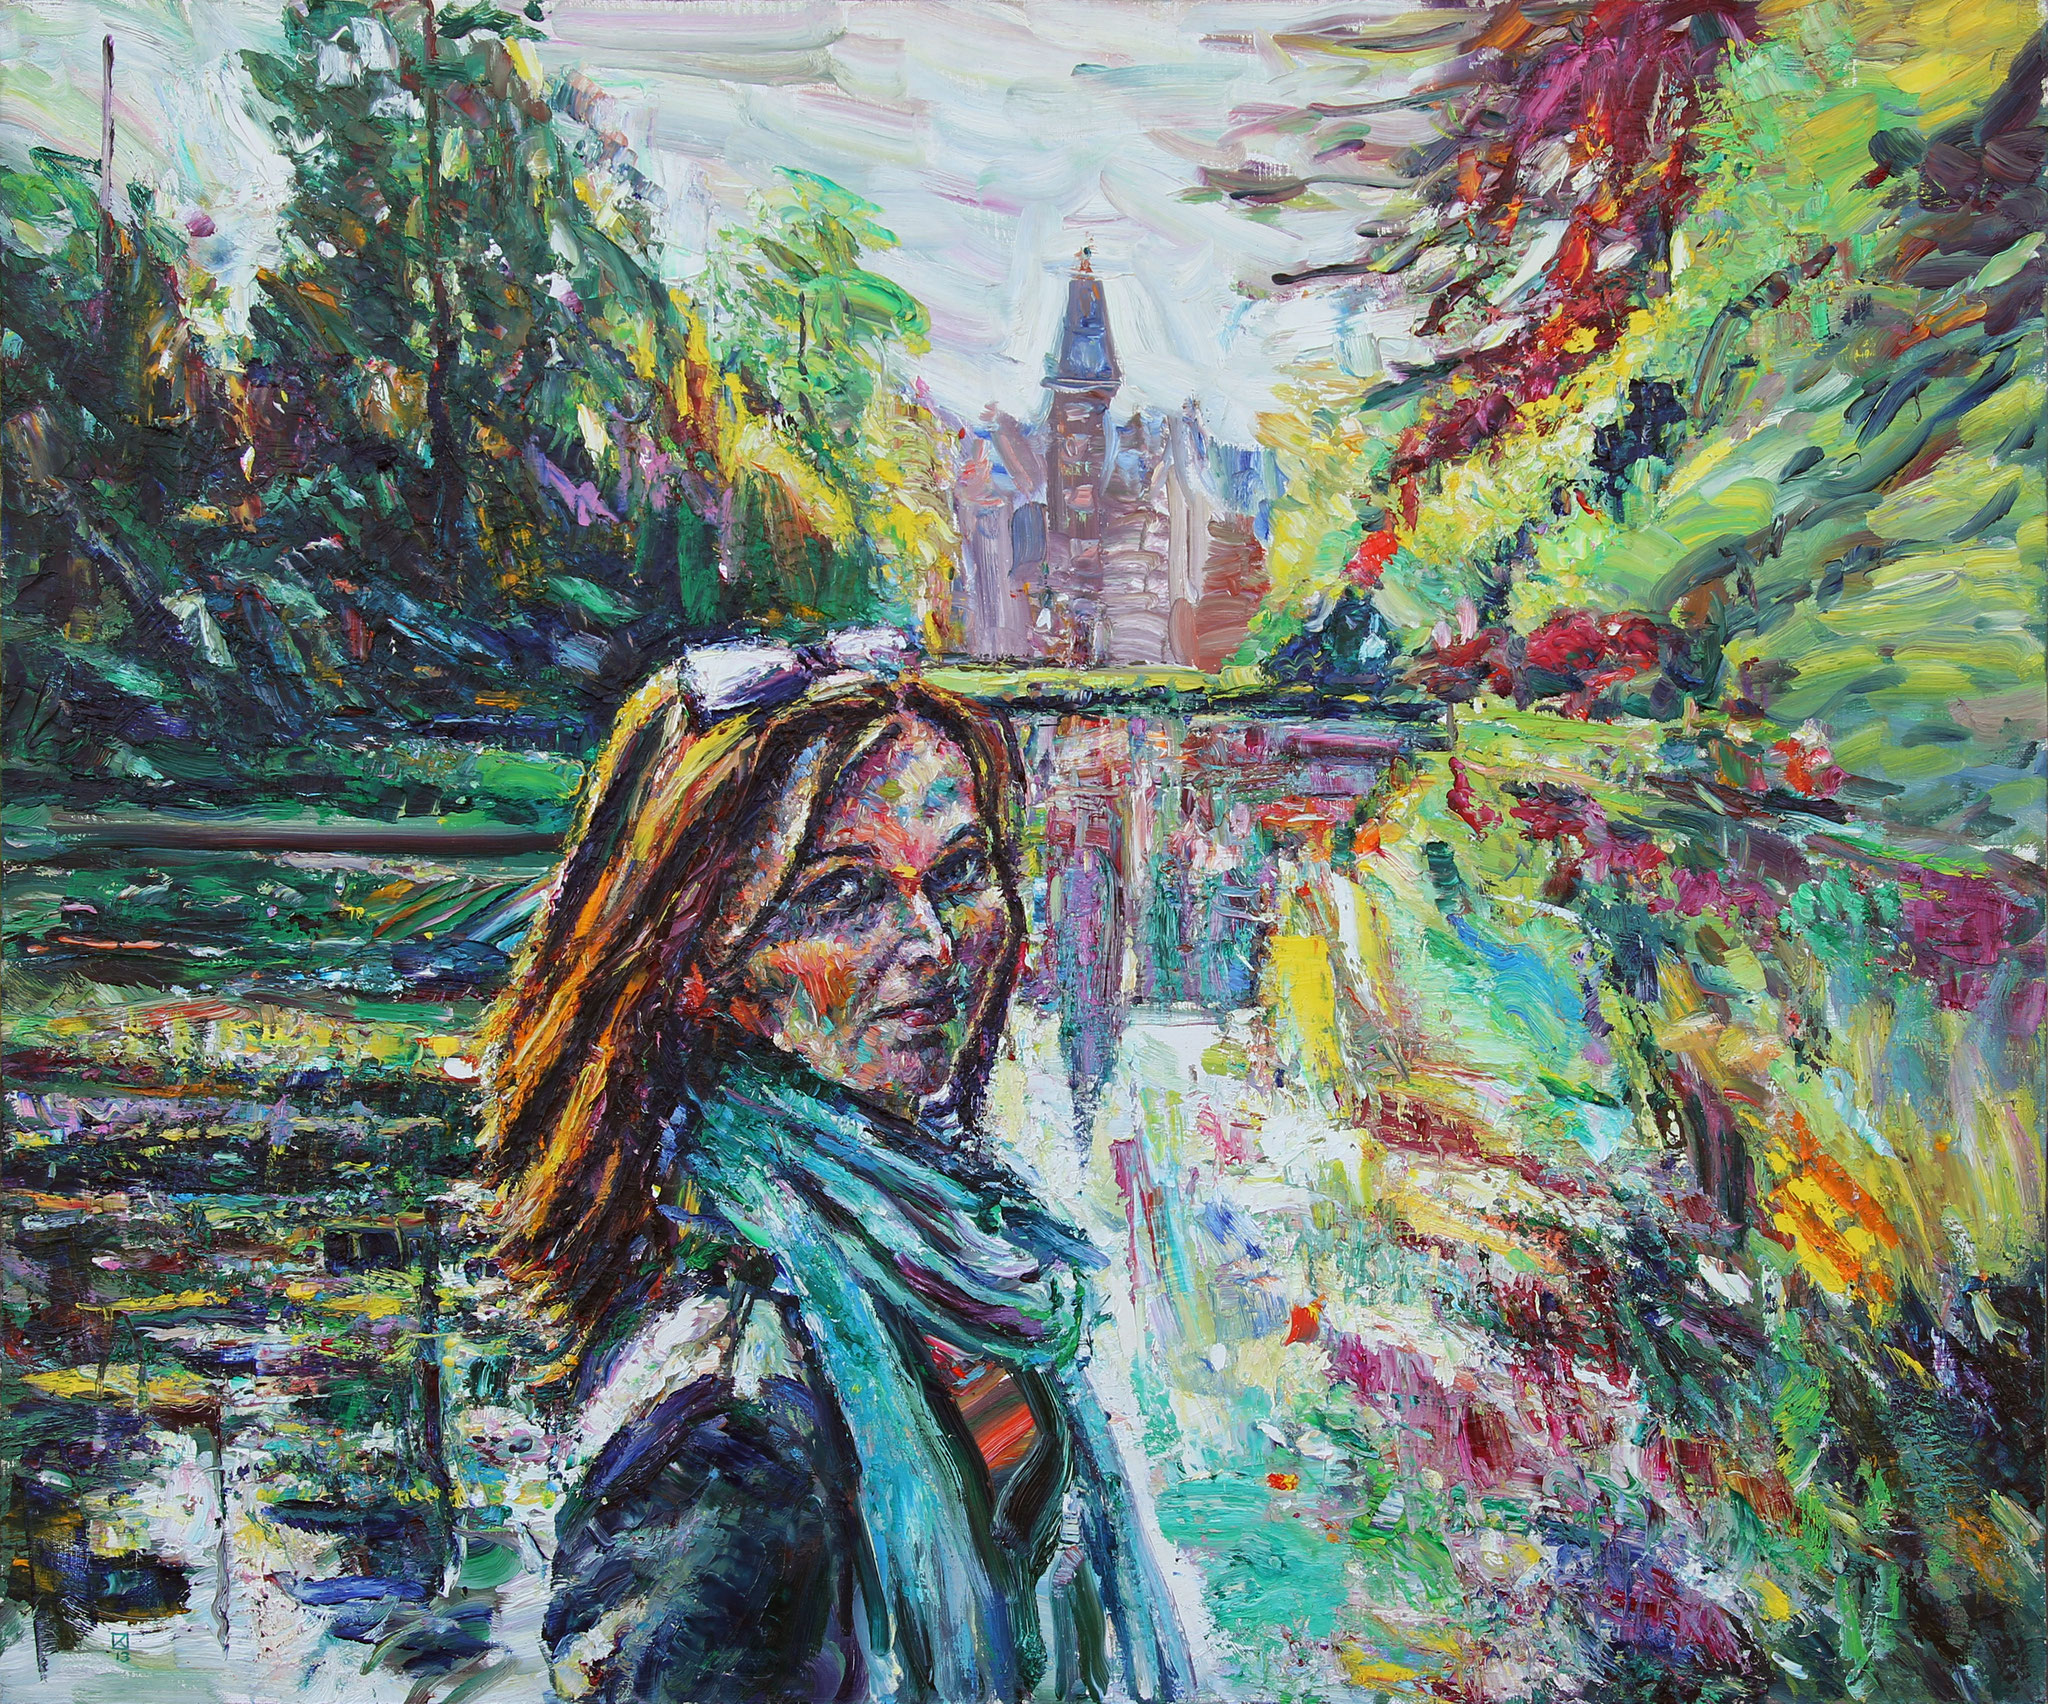 On the Shore of Marvelous Lake. 2013. Oil on canvas. 100 х 120